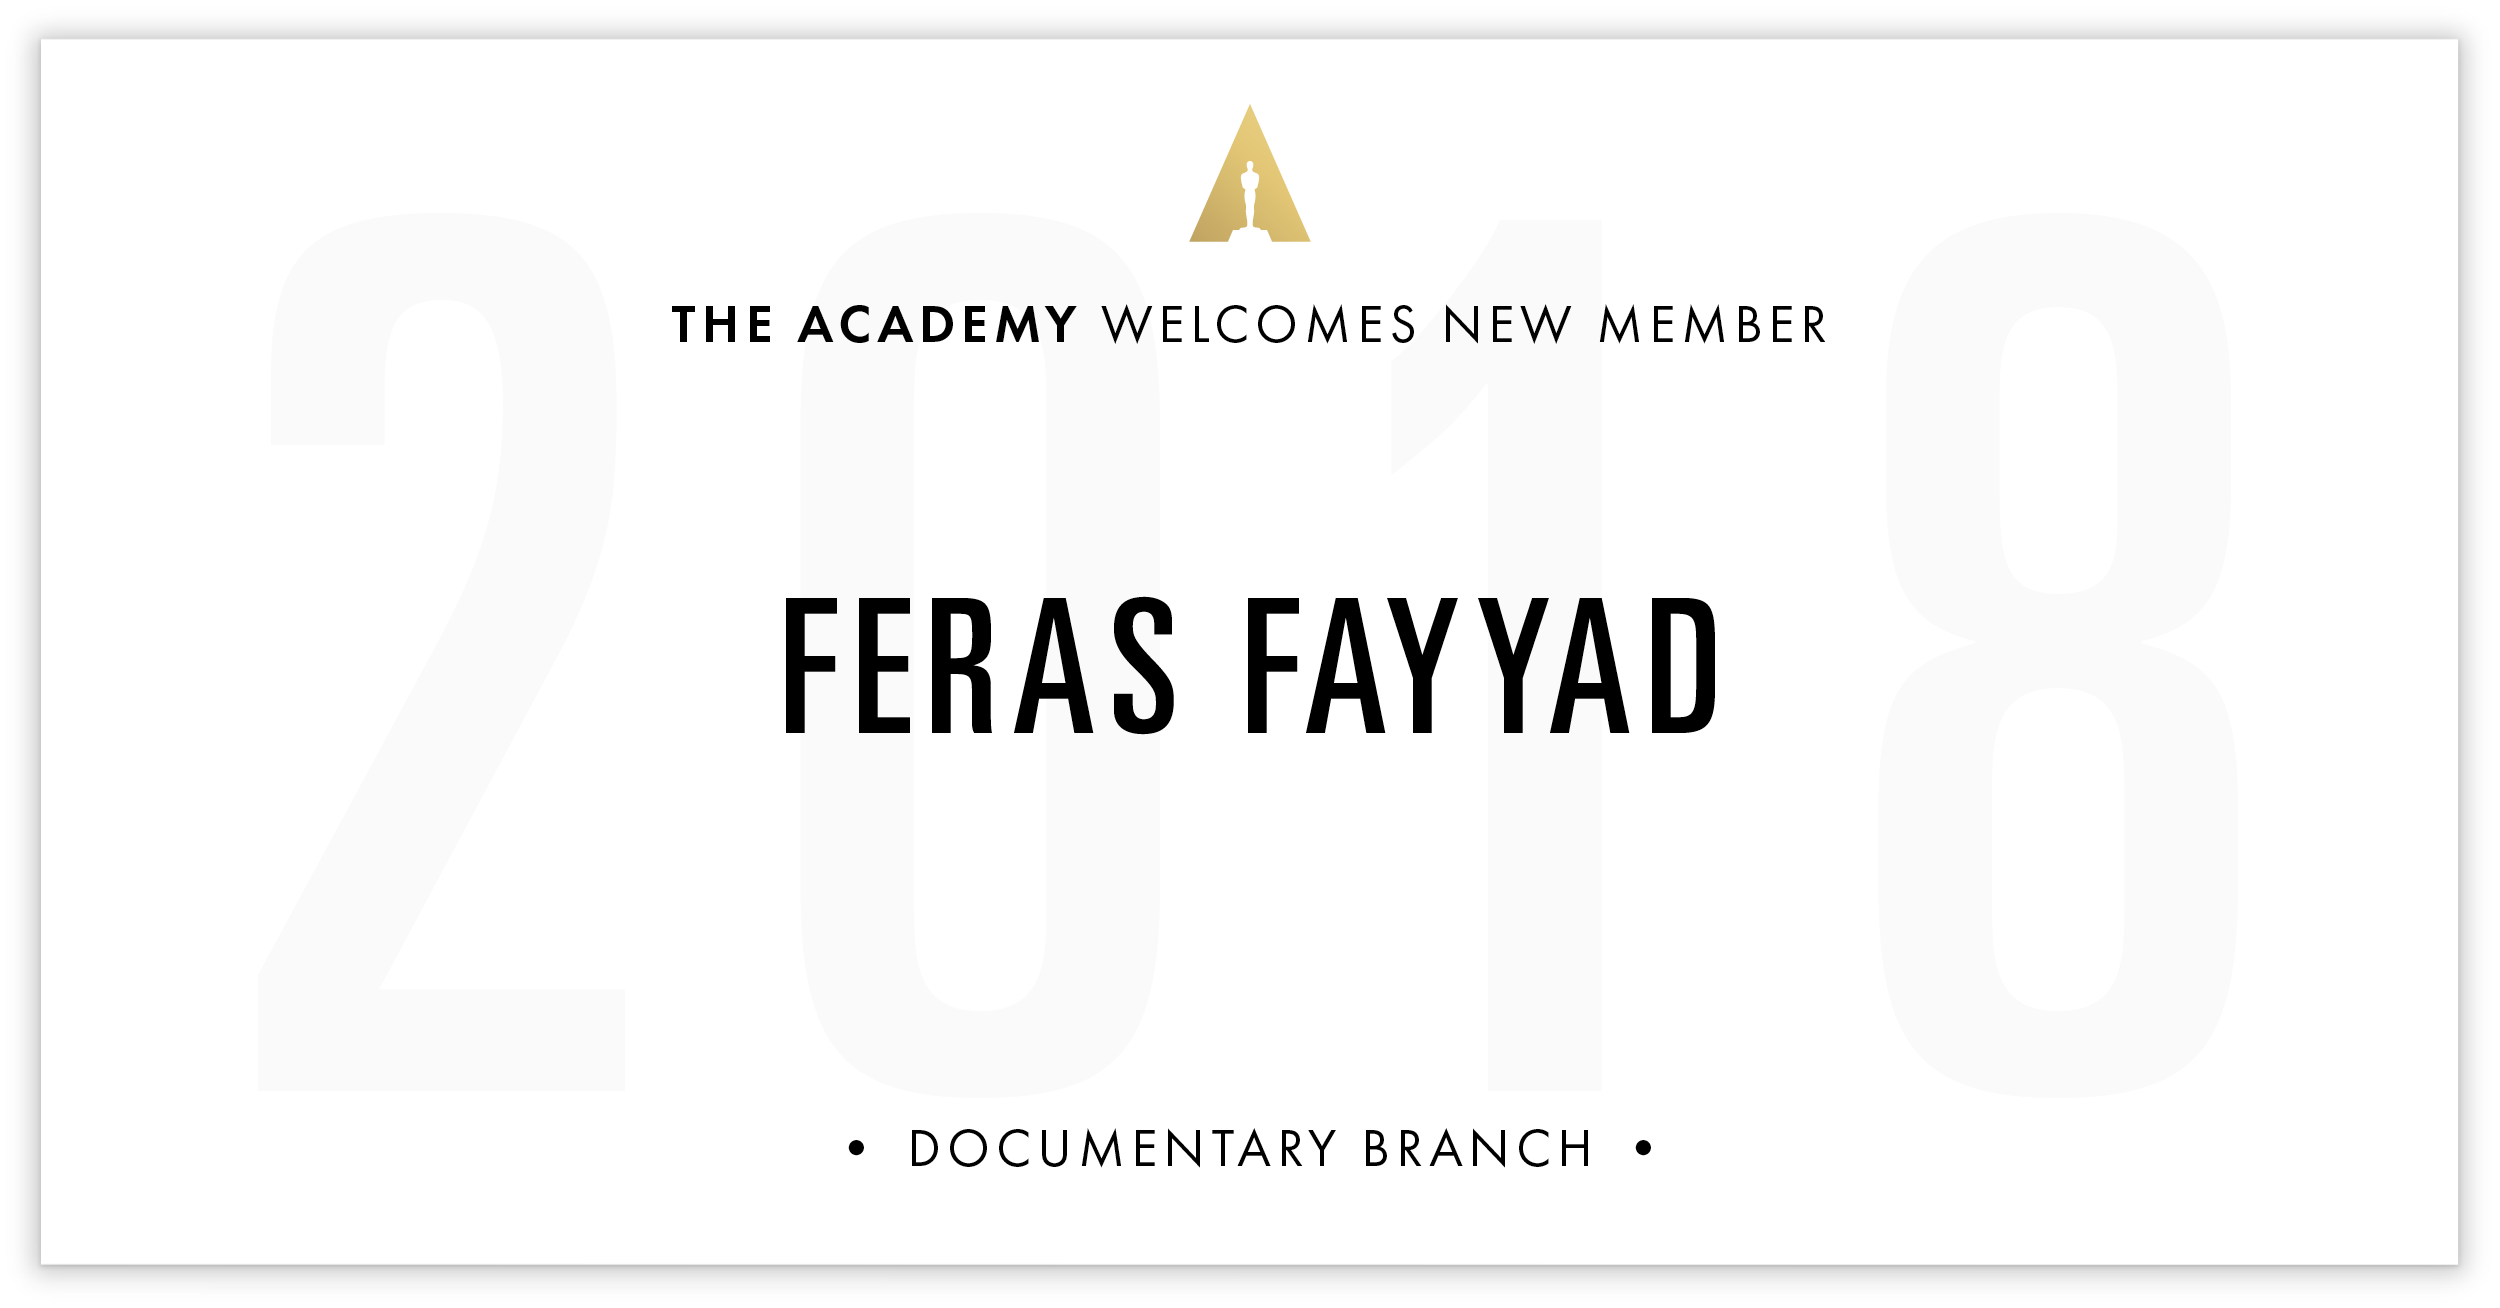 Feras Fayyad is invited!